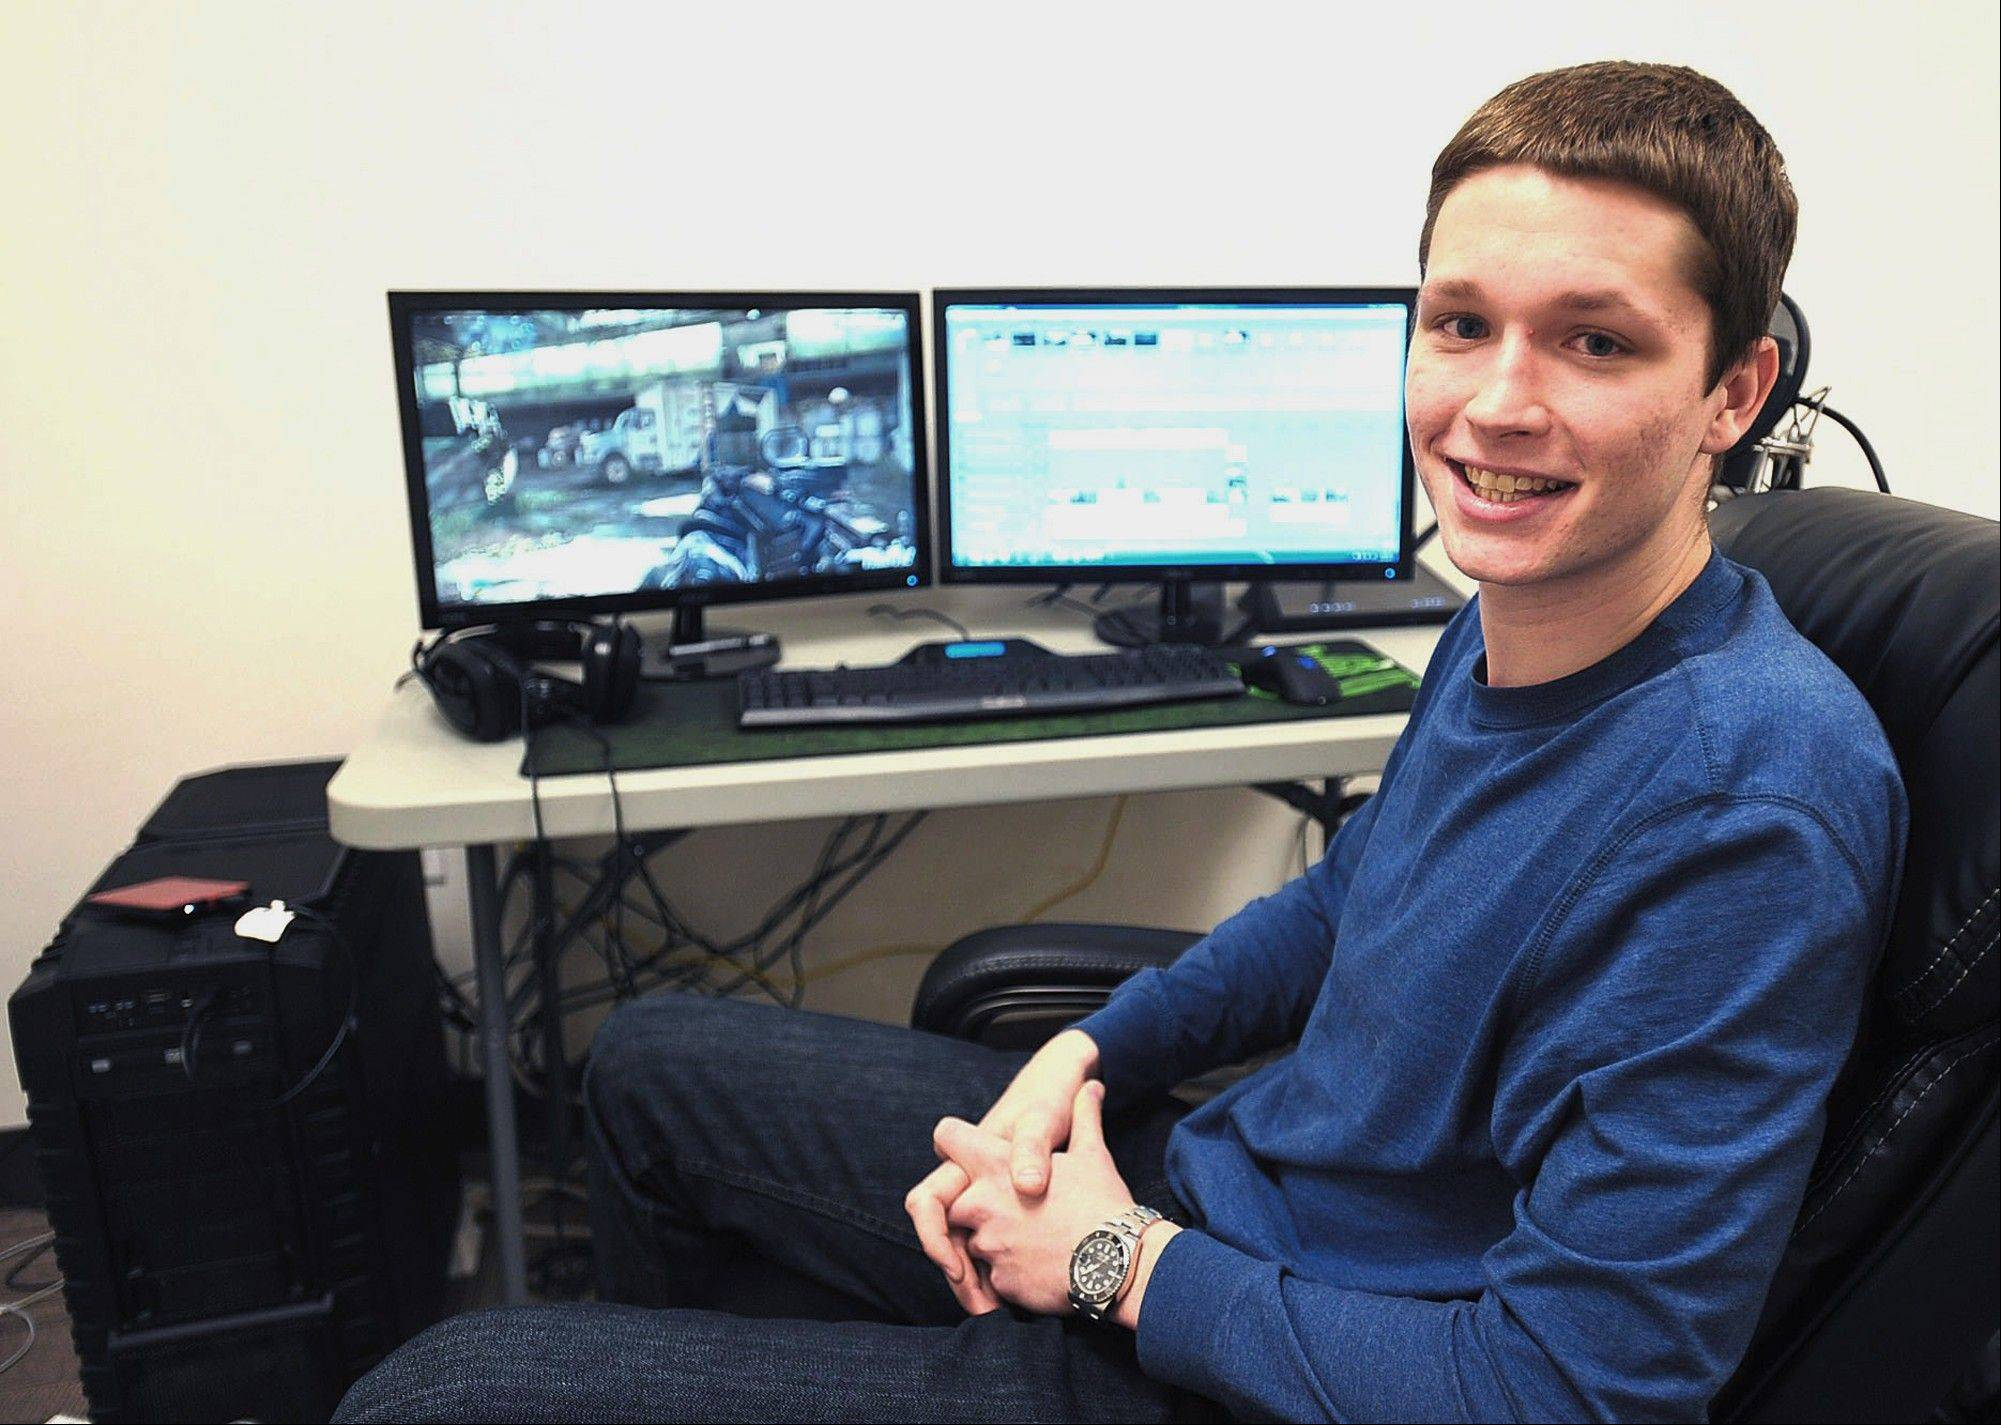 21-year-old Trevor Martin, who parlayed his expertise from playing �Call of Duty� games into a career as a video game commentator on YouTube, in Champaign.